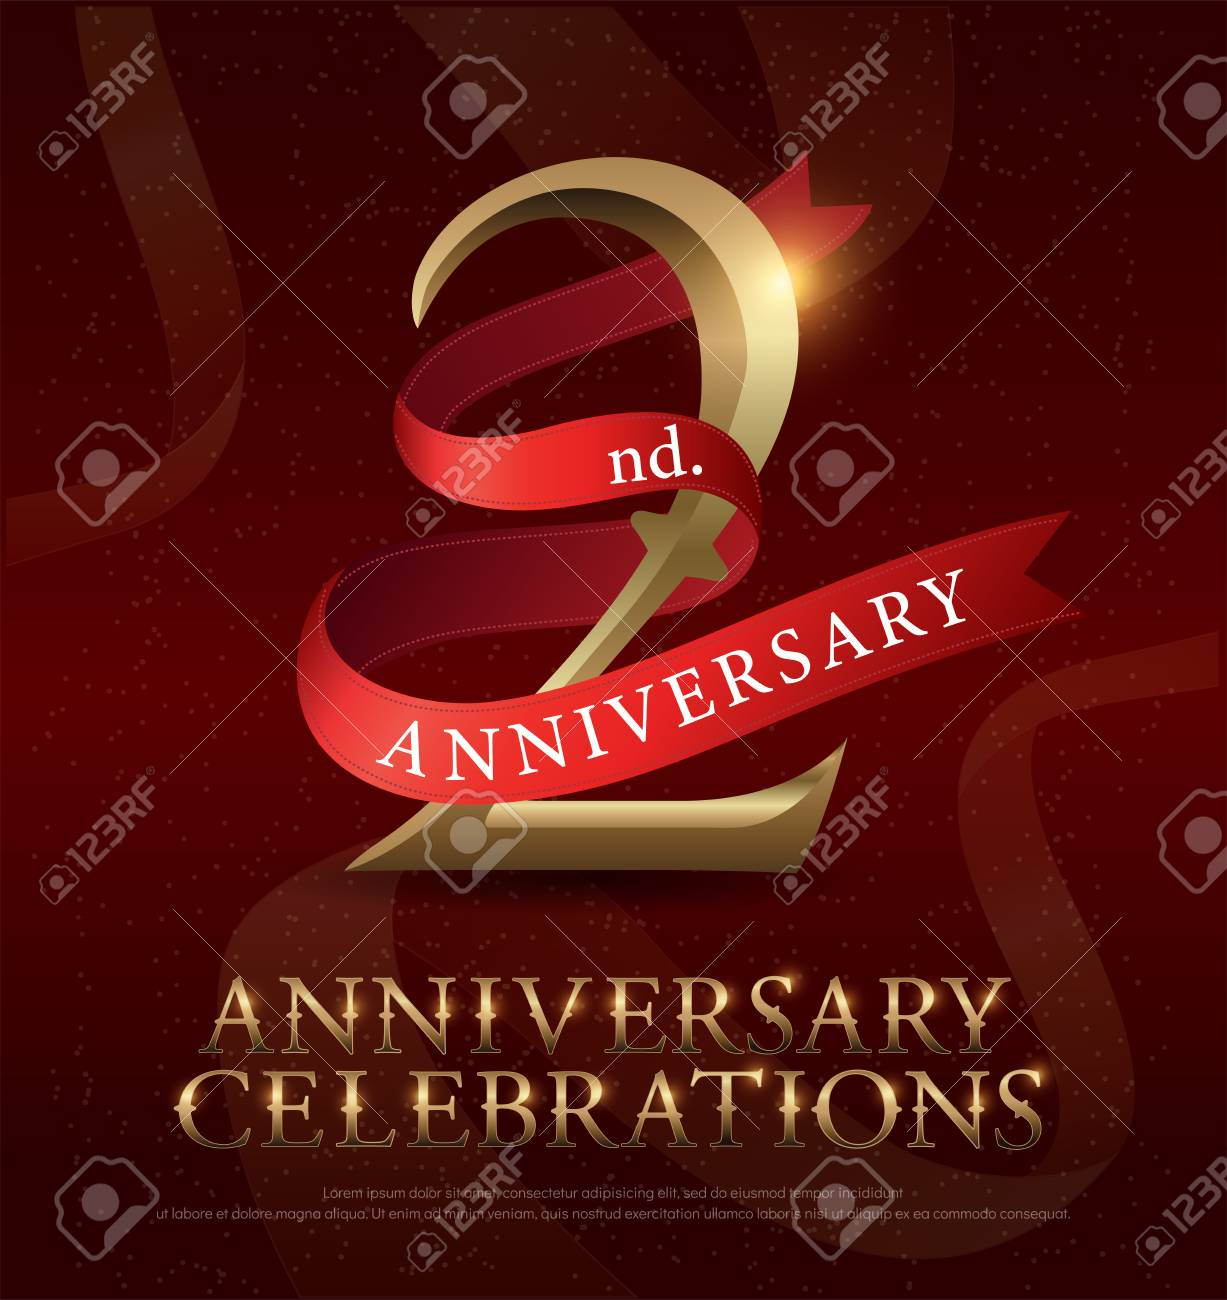 2nd Year Anniversary Celebration Golden Logo With Red Ribbon Royalty Free Cliparts Vectors And Stock Illustration Image 92653385